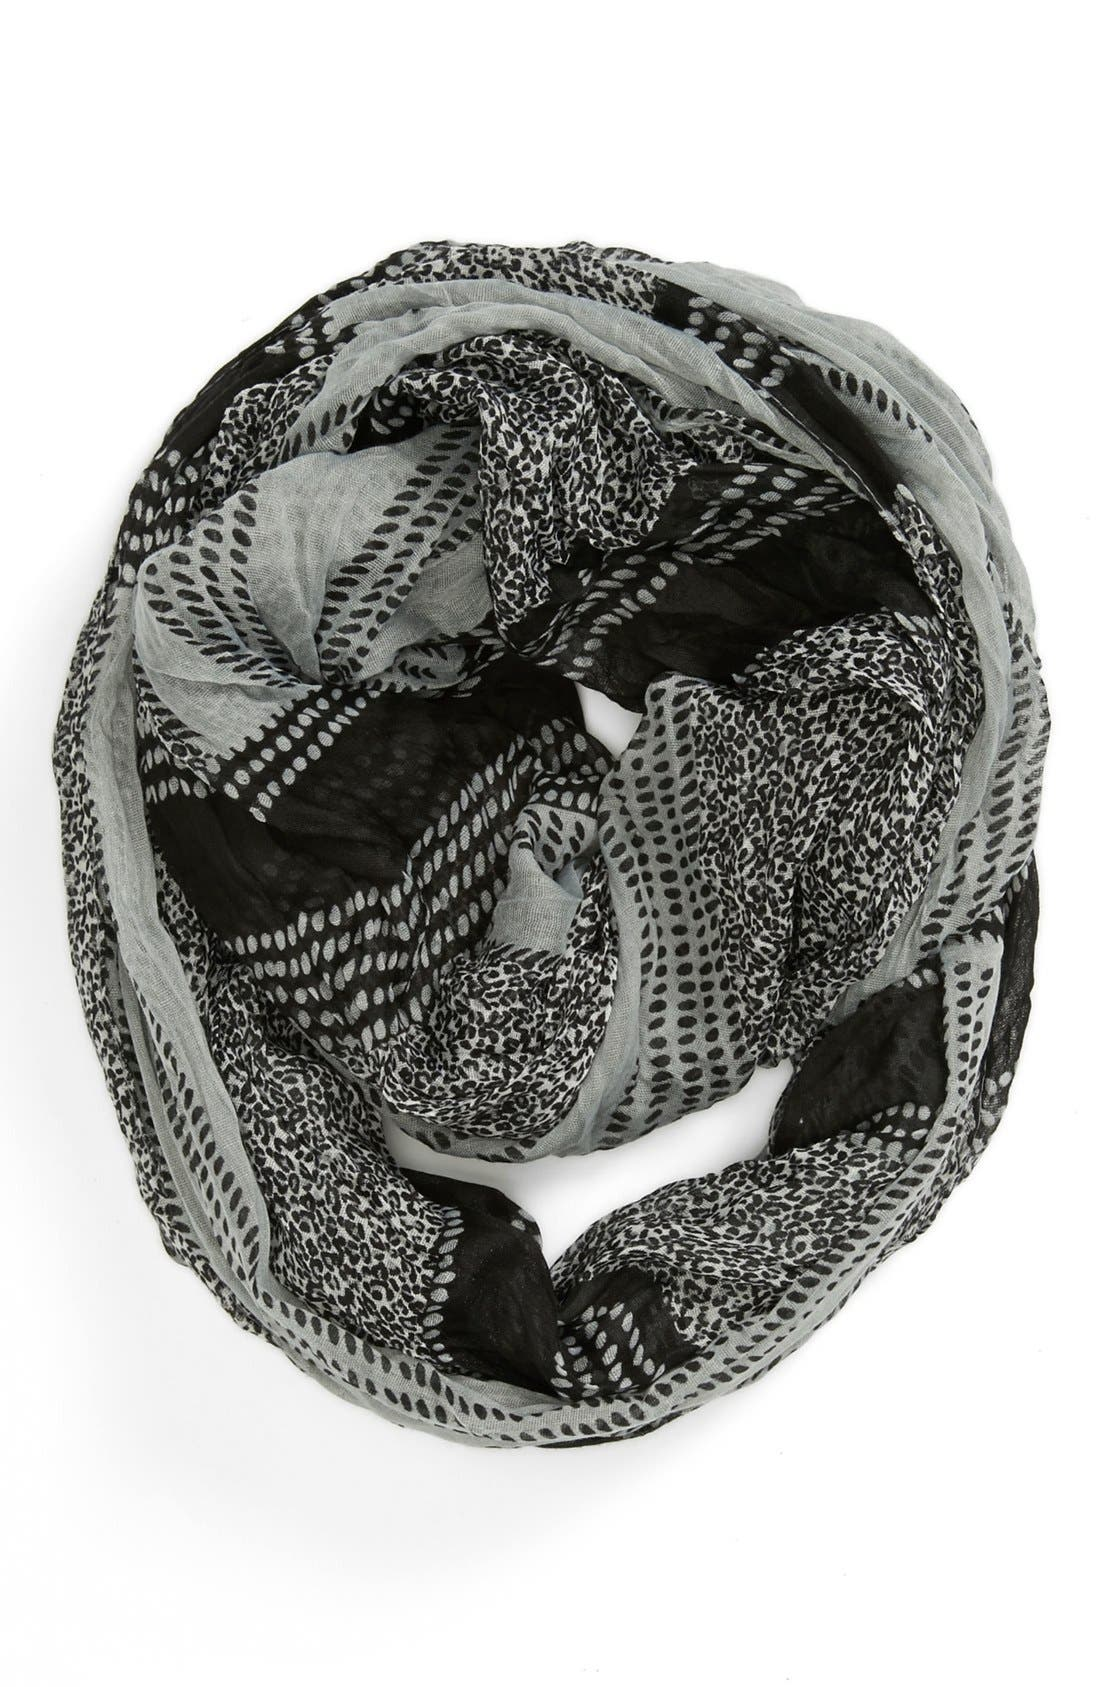 Main Image - Tarnish 'Variegated Leopard' Infinity Scarf